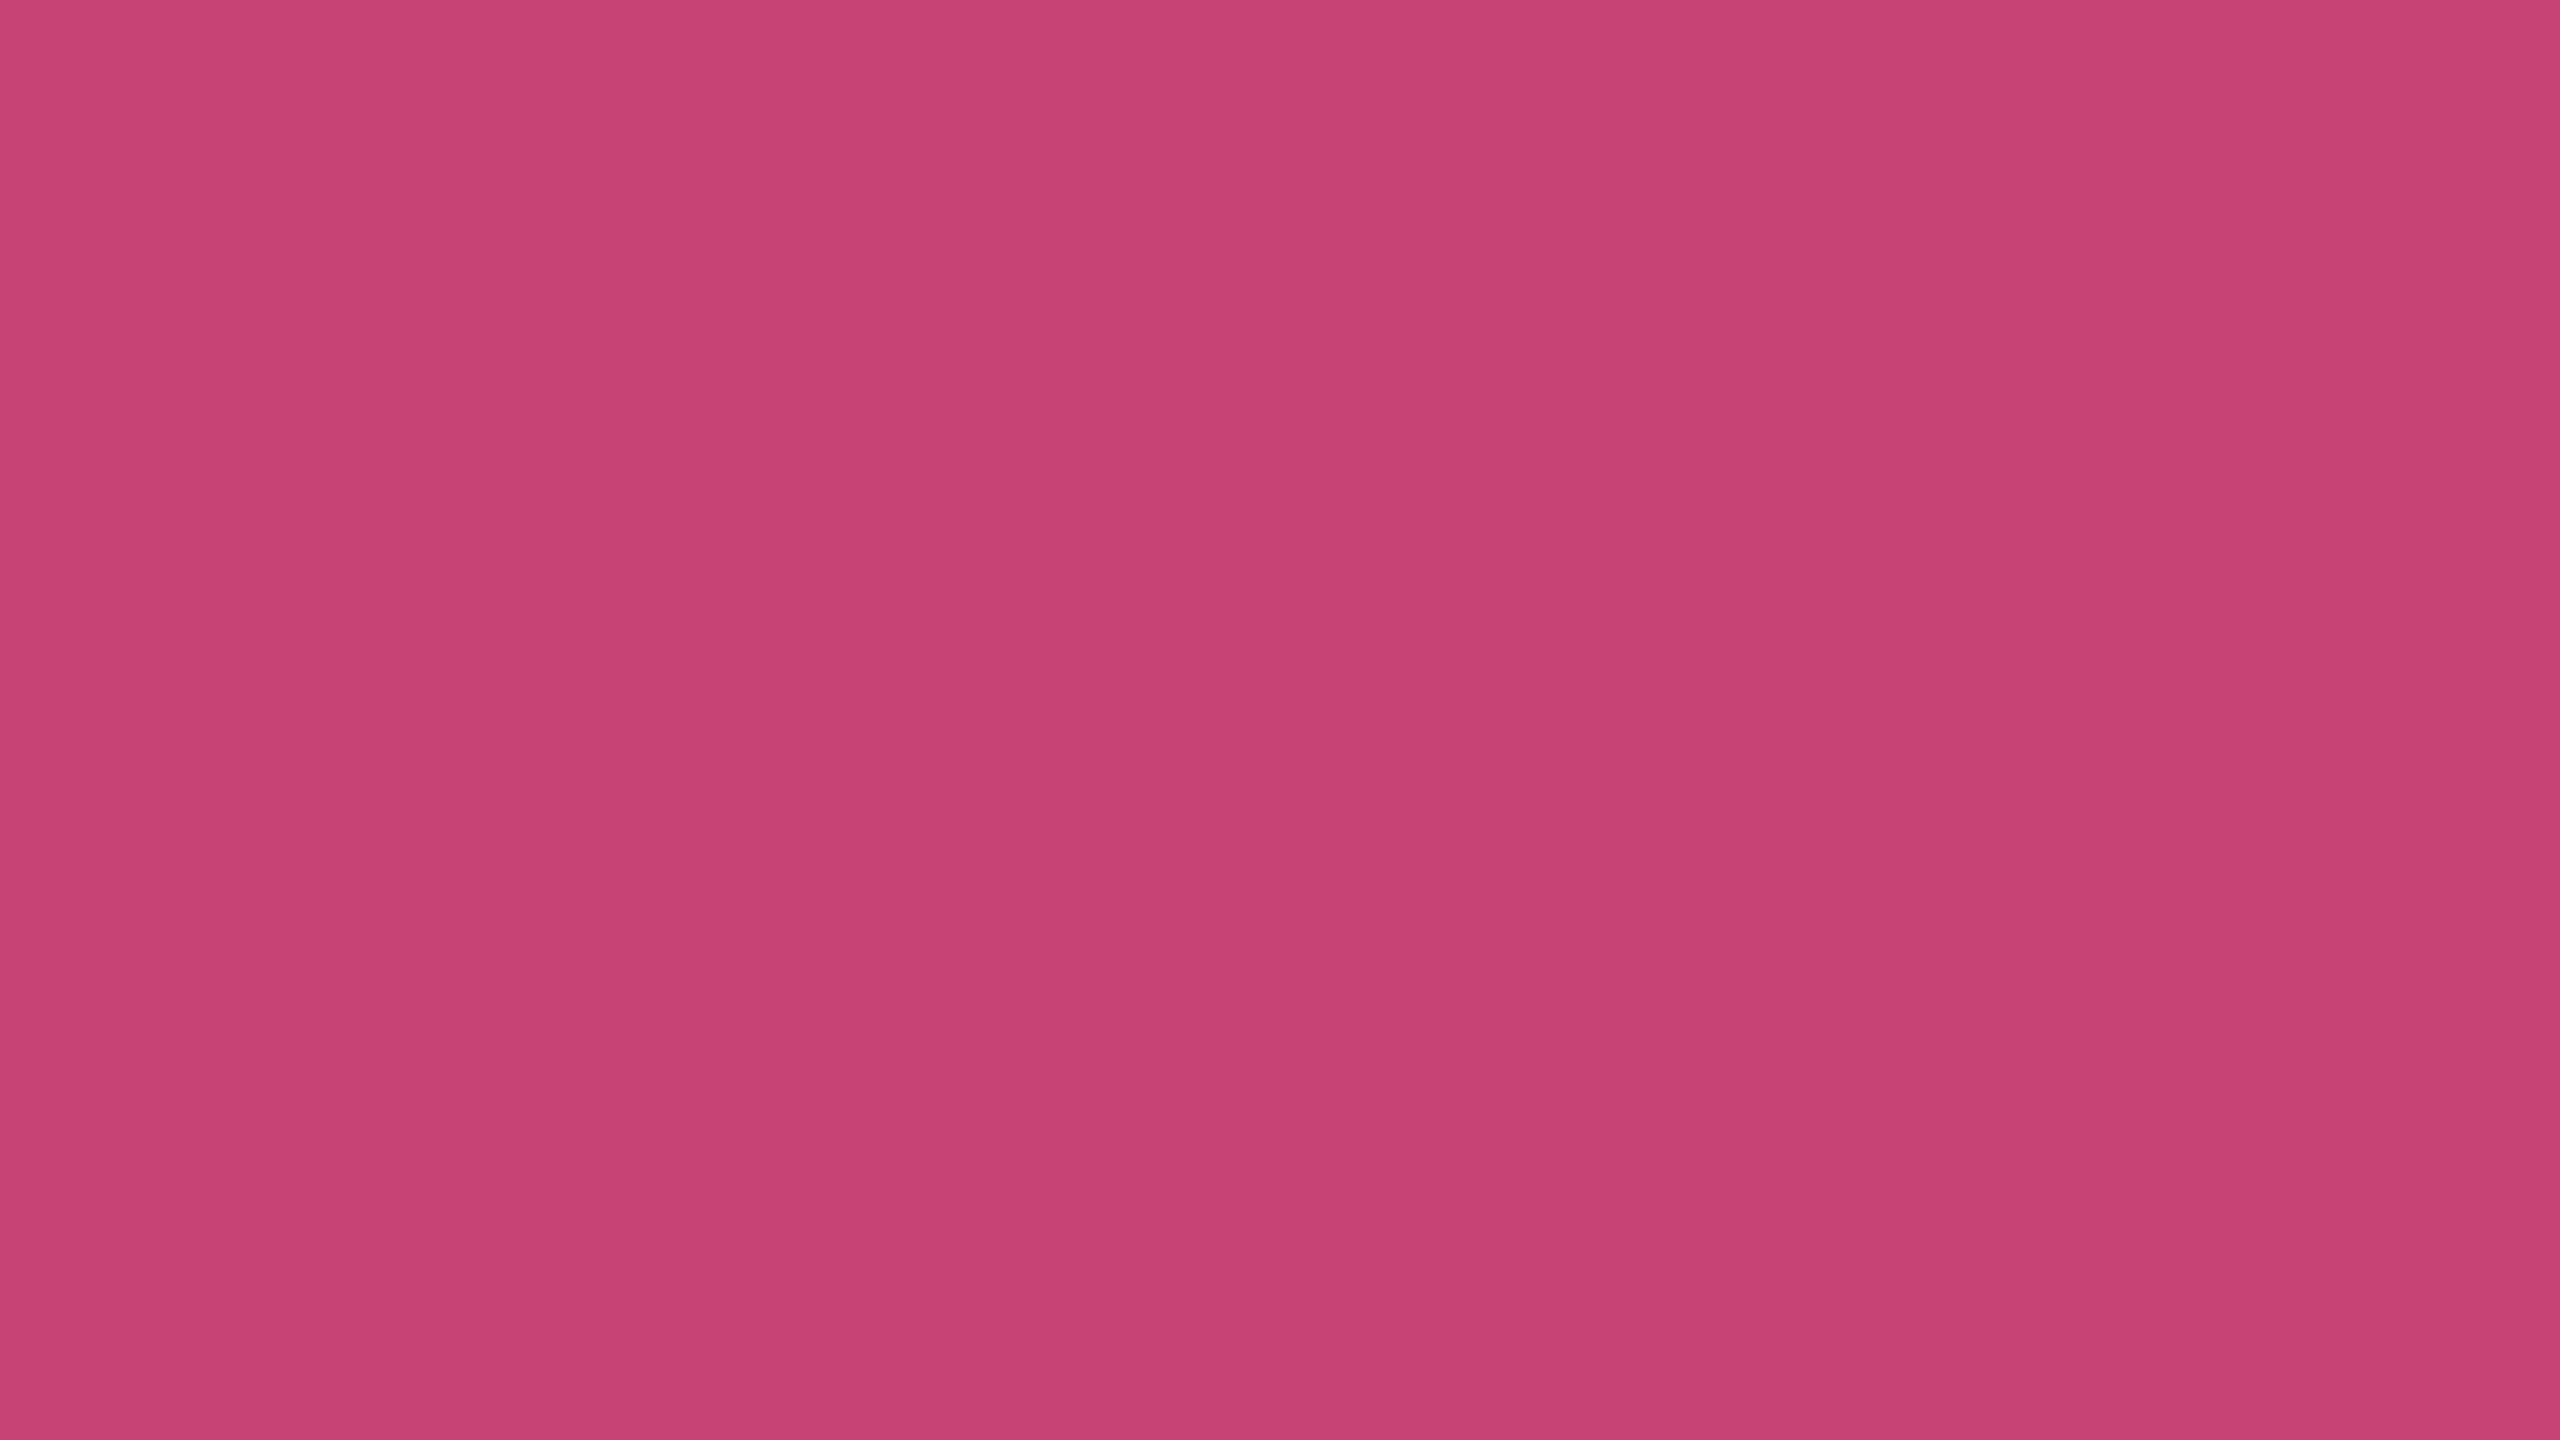 2560x1440 Fuchsia Rose Solid Color Background